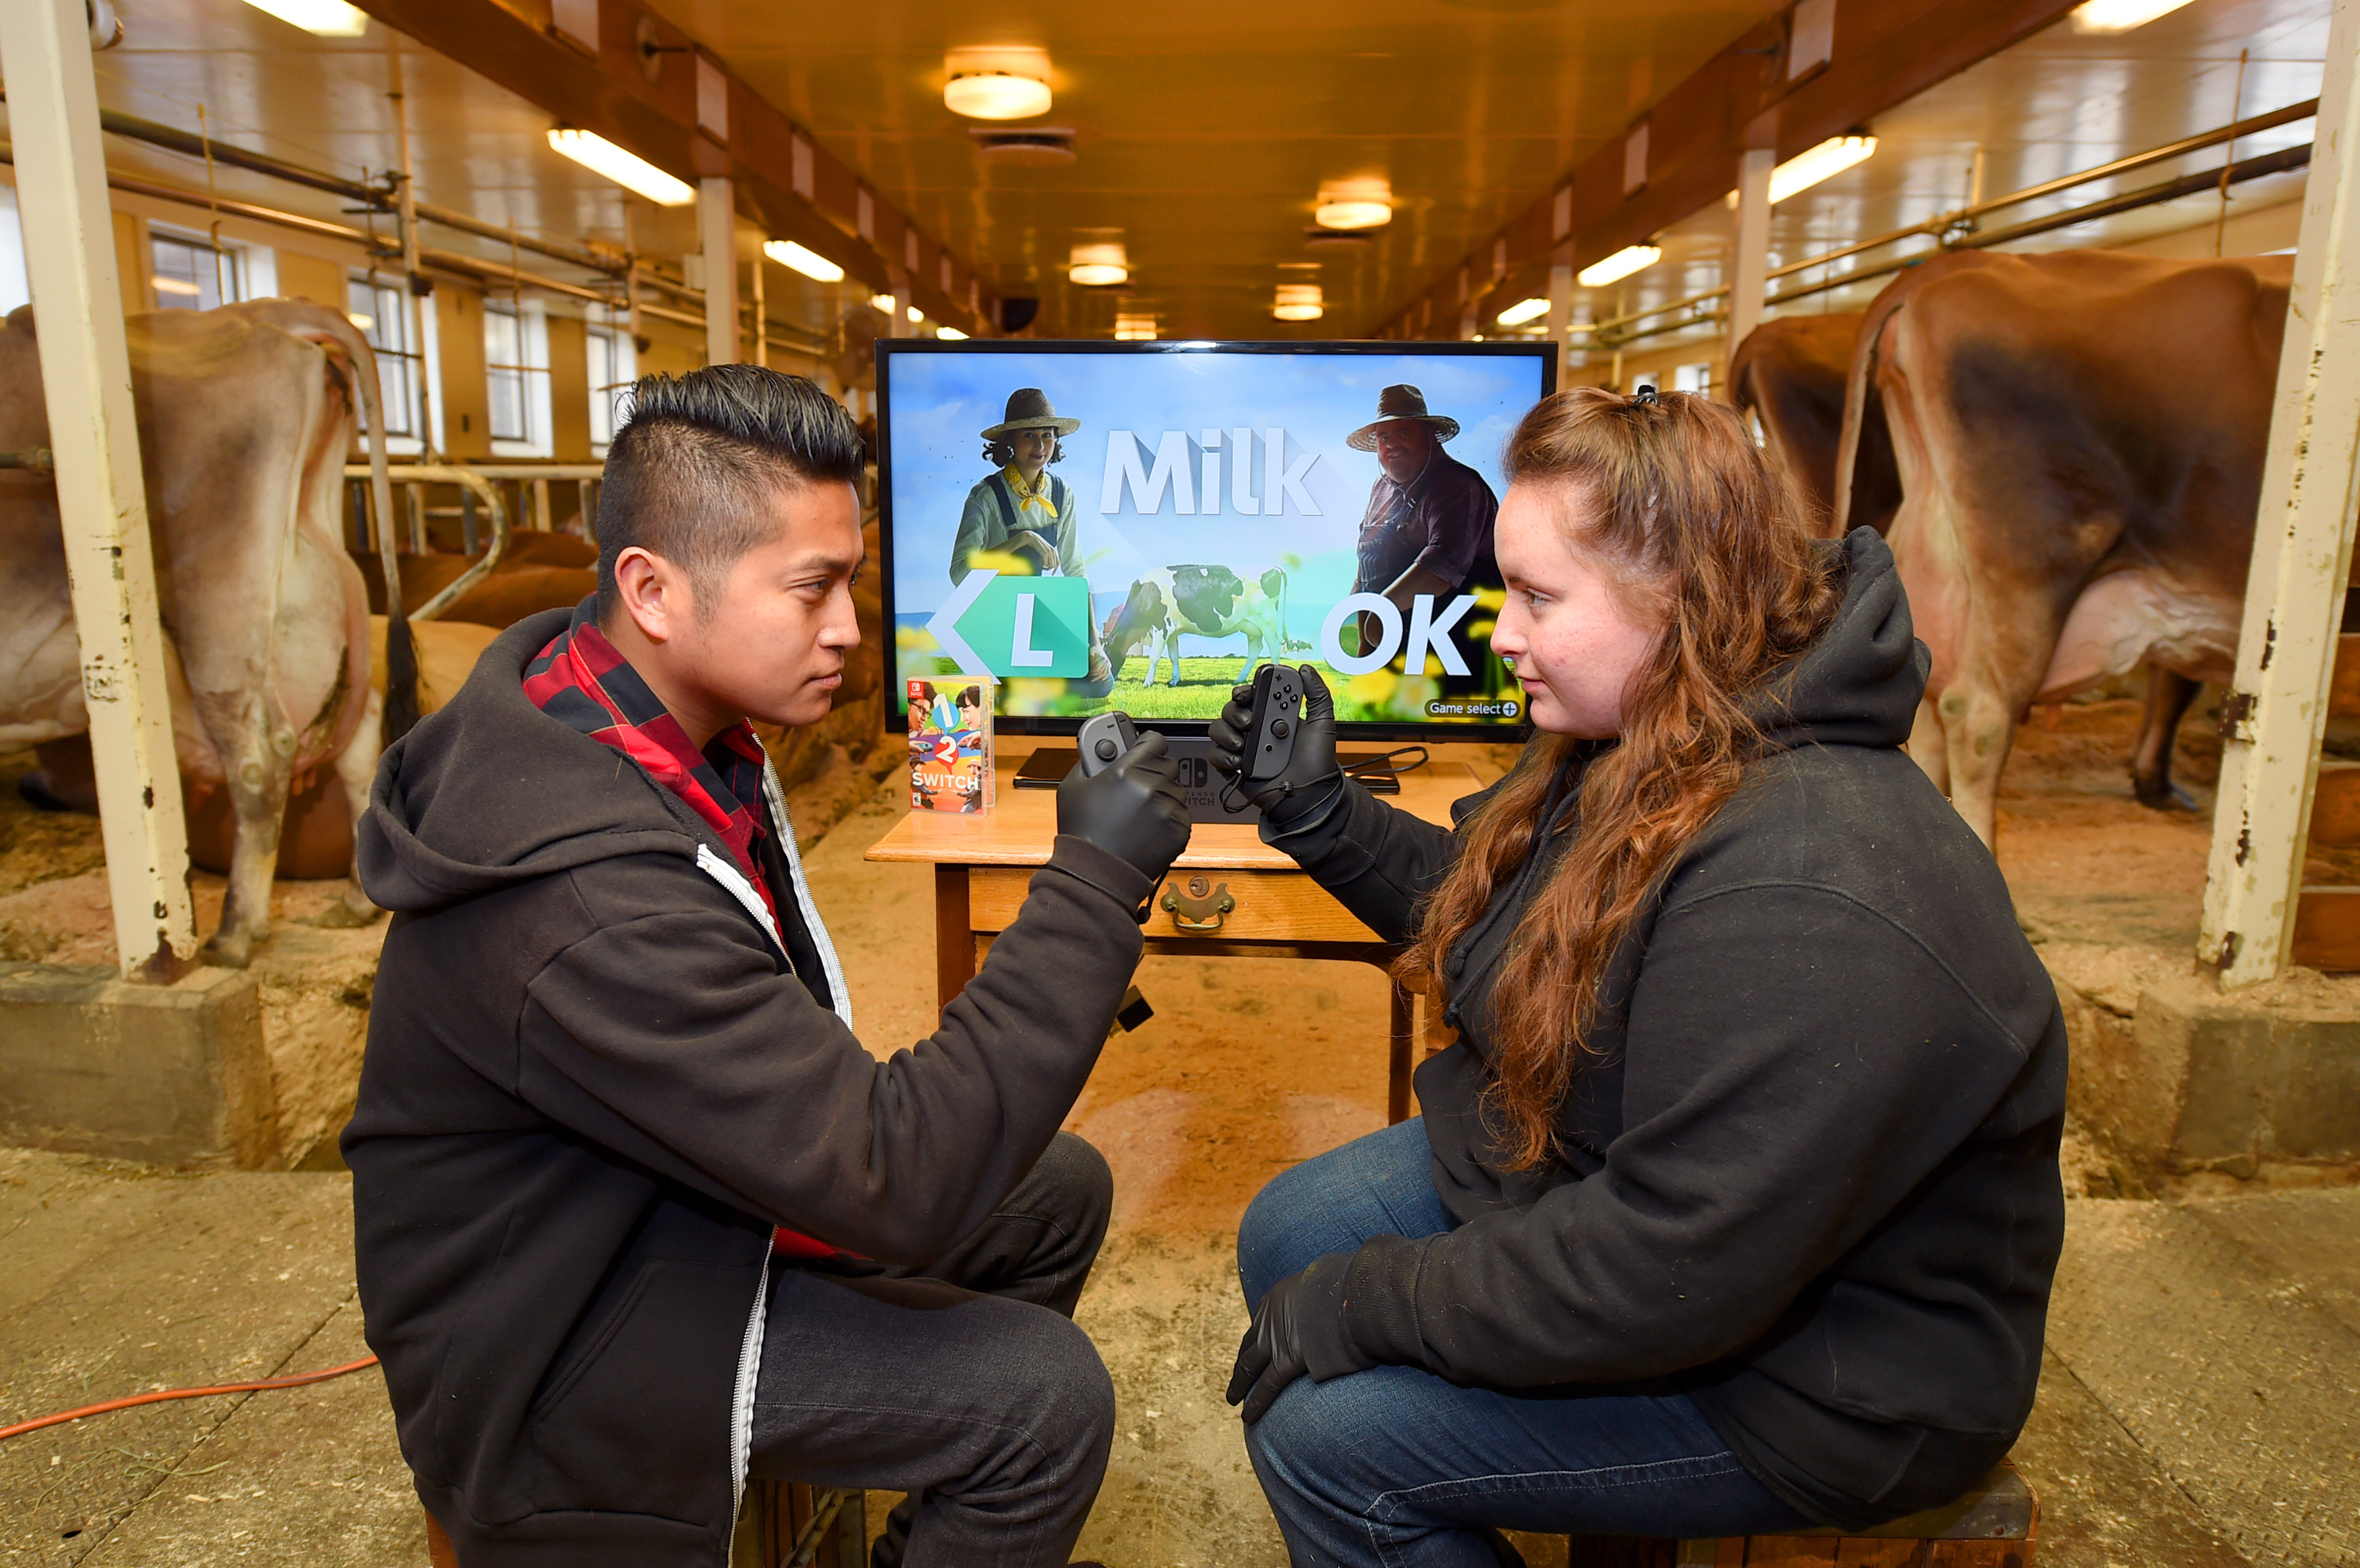 In this photo provided by Nintendo of America, gamers from Nintendo go head to head against real dairy farmers to see whose cow-milking skills reign victorious in Milk, one of 28 fun games in the 1-2-Switch game for the Nintendo Switch system. Players enjoyed several friendly matches in various locations throughout Billings Farm & Museum in Woodstock, Vermont, on March 29. 1-2-Switch and the Nintendo Switch system are now available worldwide. (Photo: Business Wire)